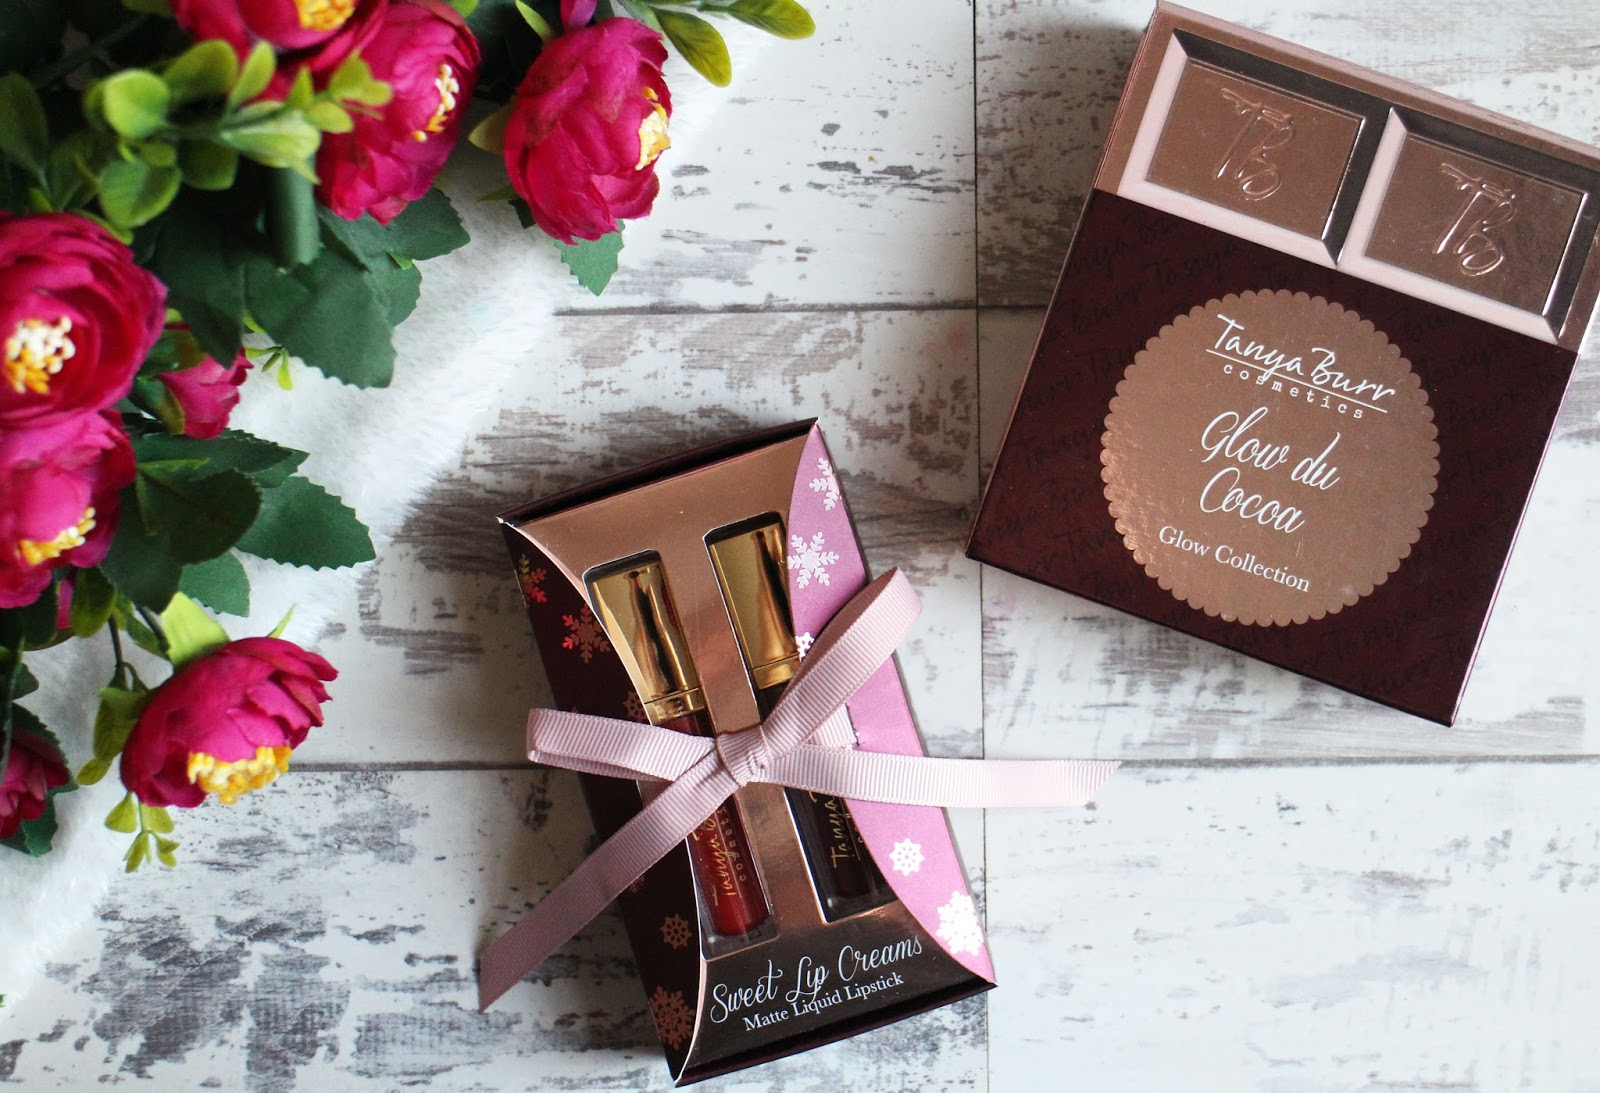 Tanya Burr Glow Du Cocoa & Sweet Lip Cream Gift Sets